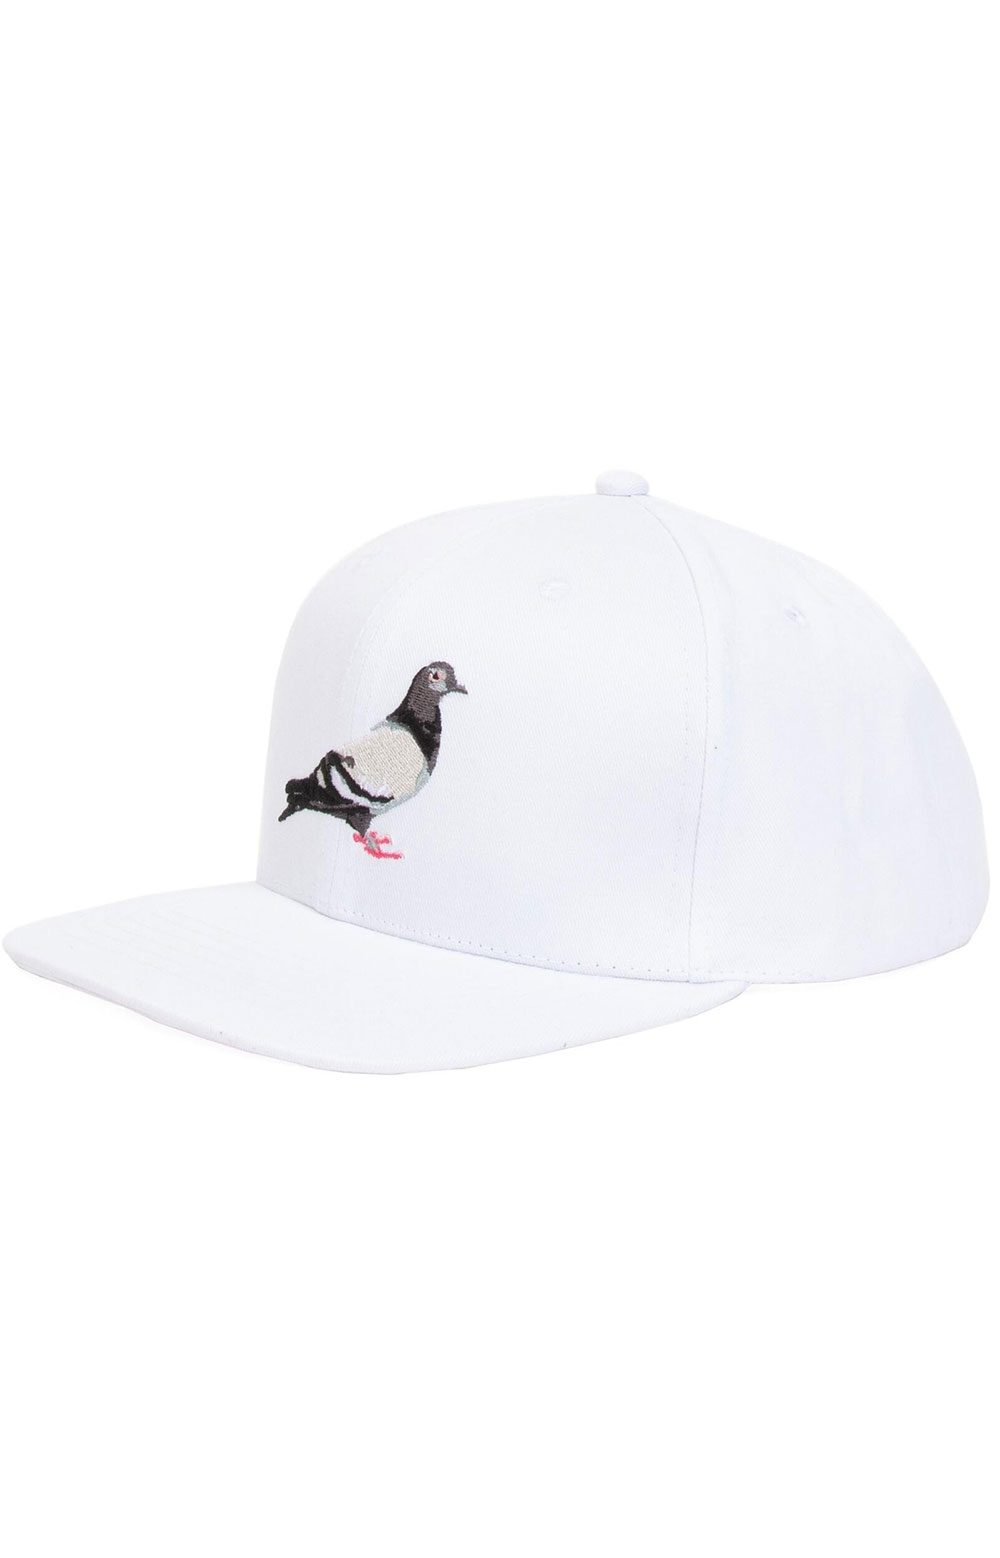 Pigeon Snap-Back Hat - White